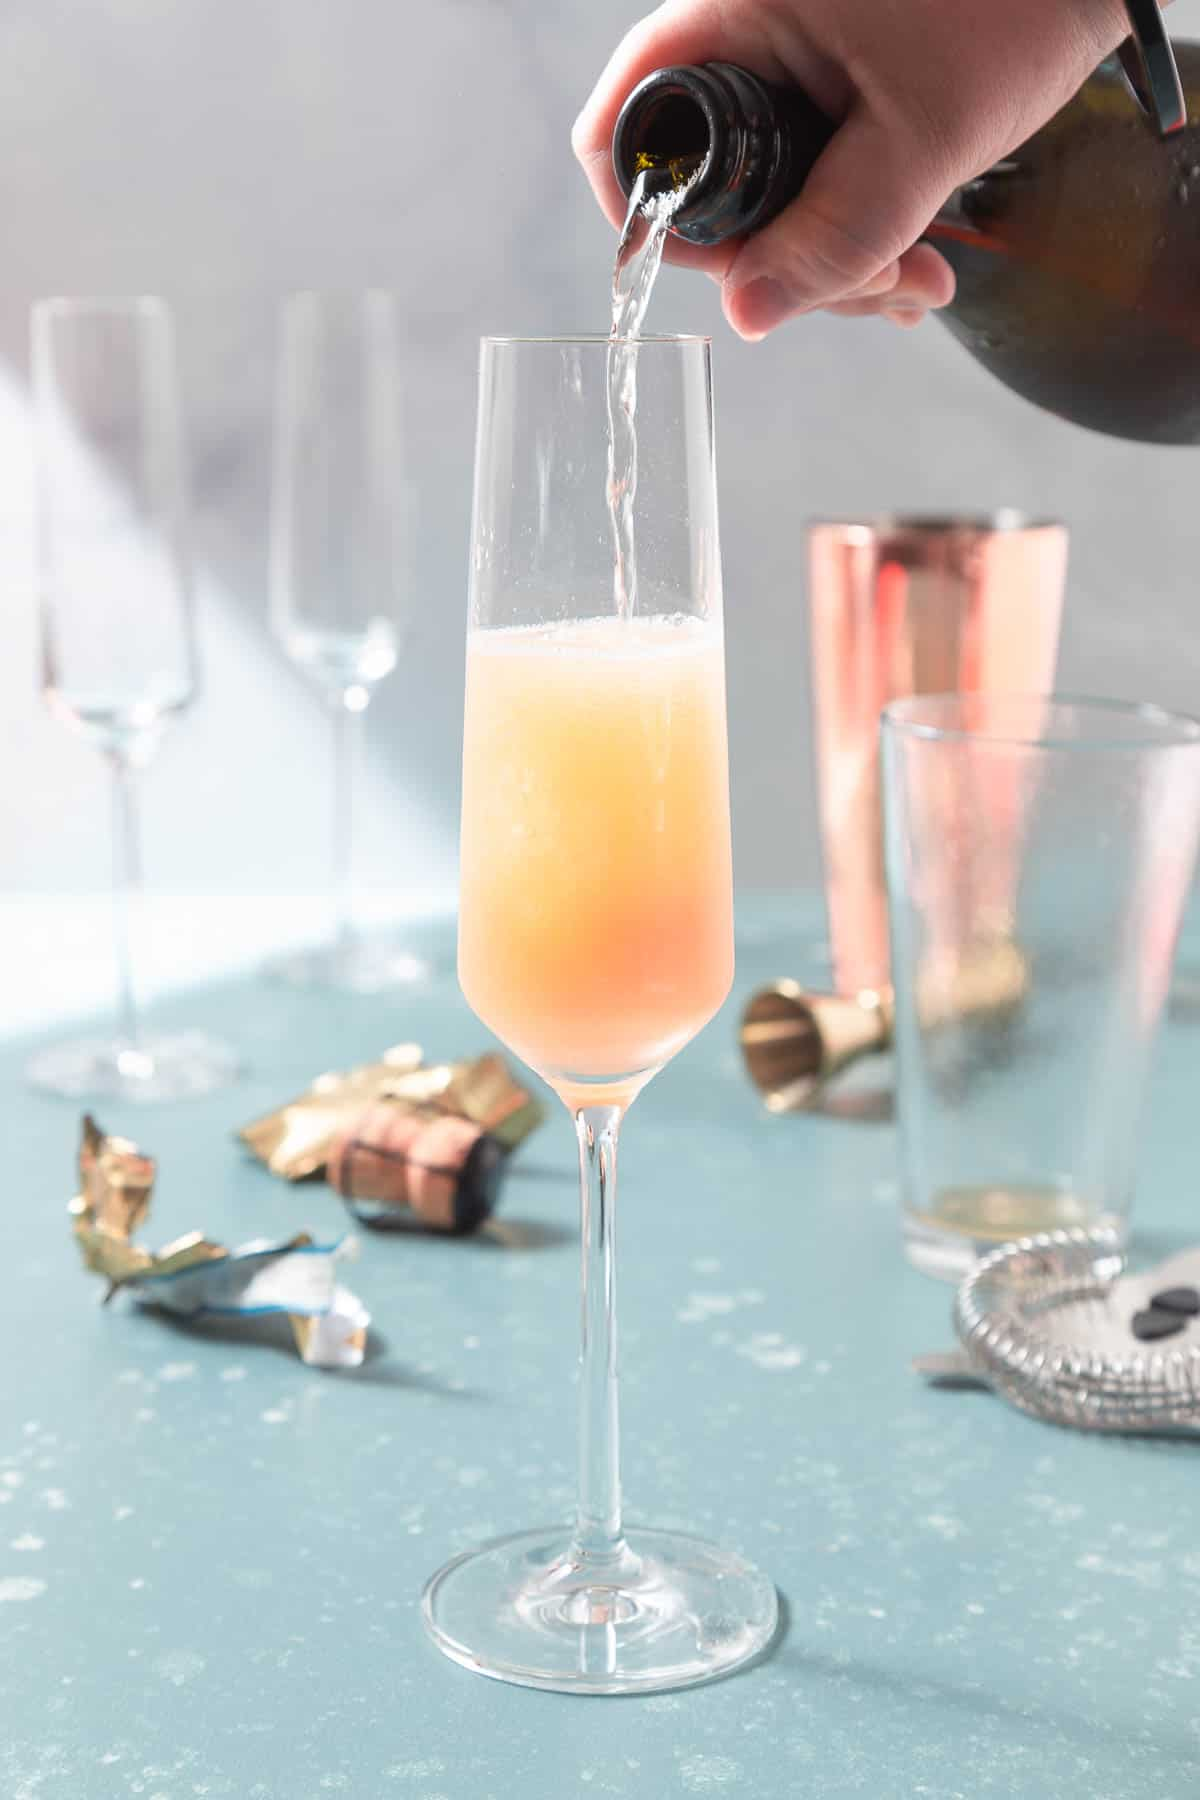 Pouring sparking wine into a glass champagne flute